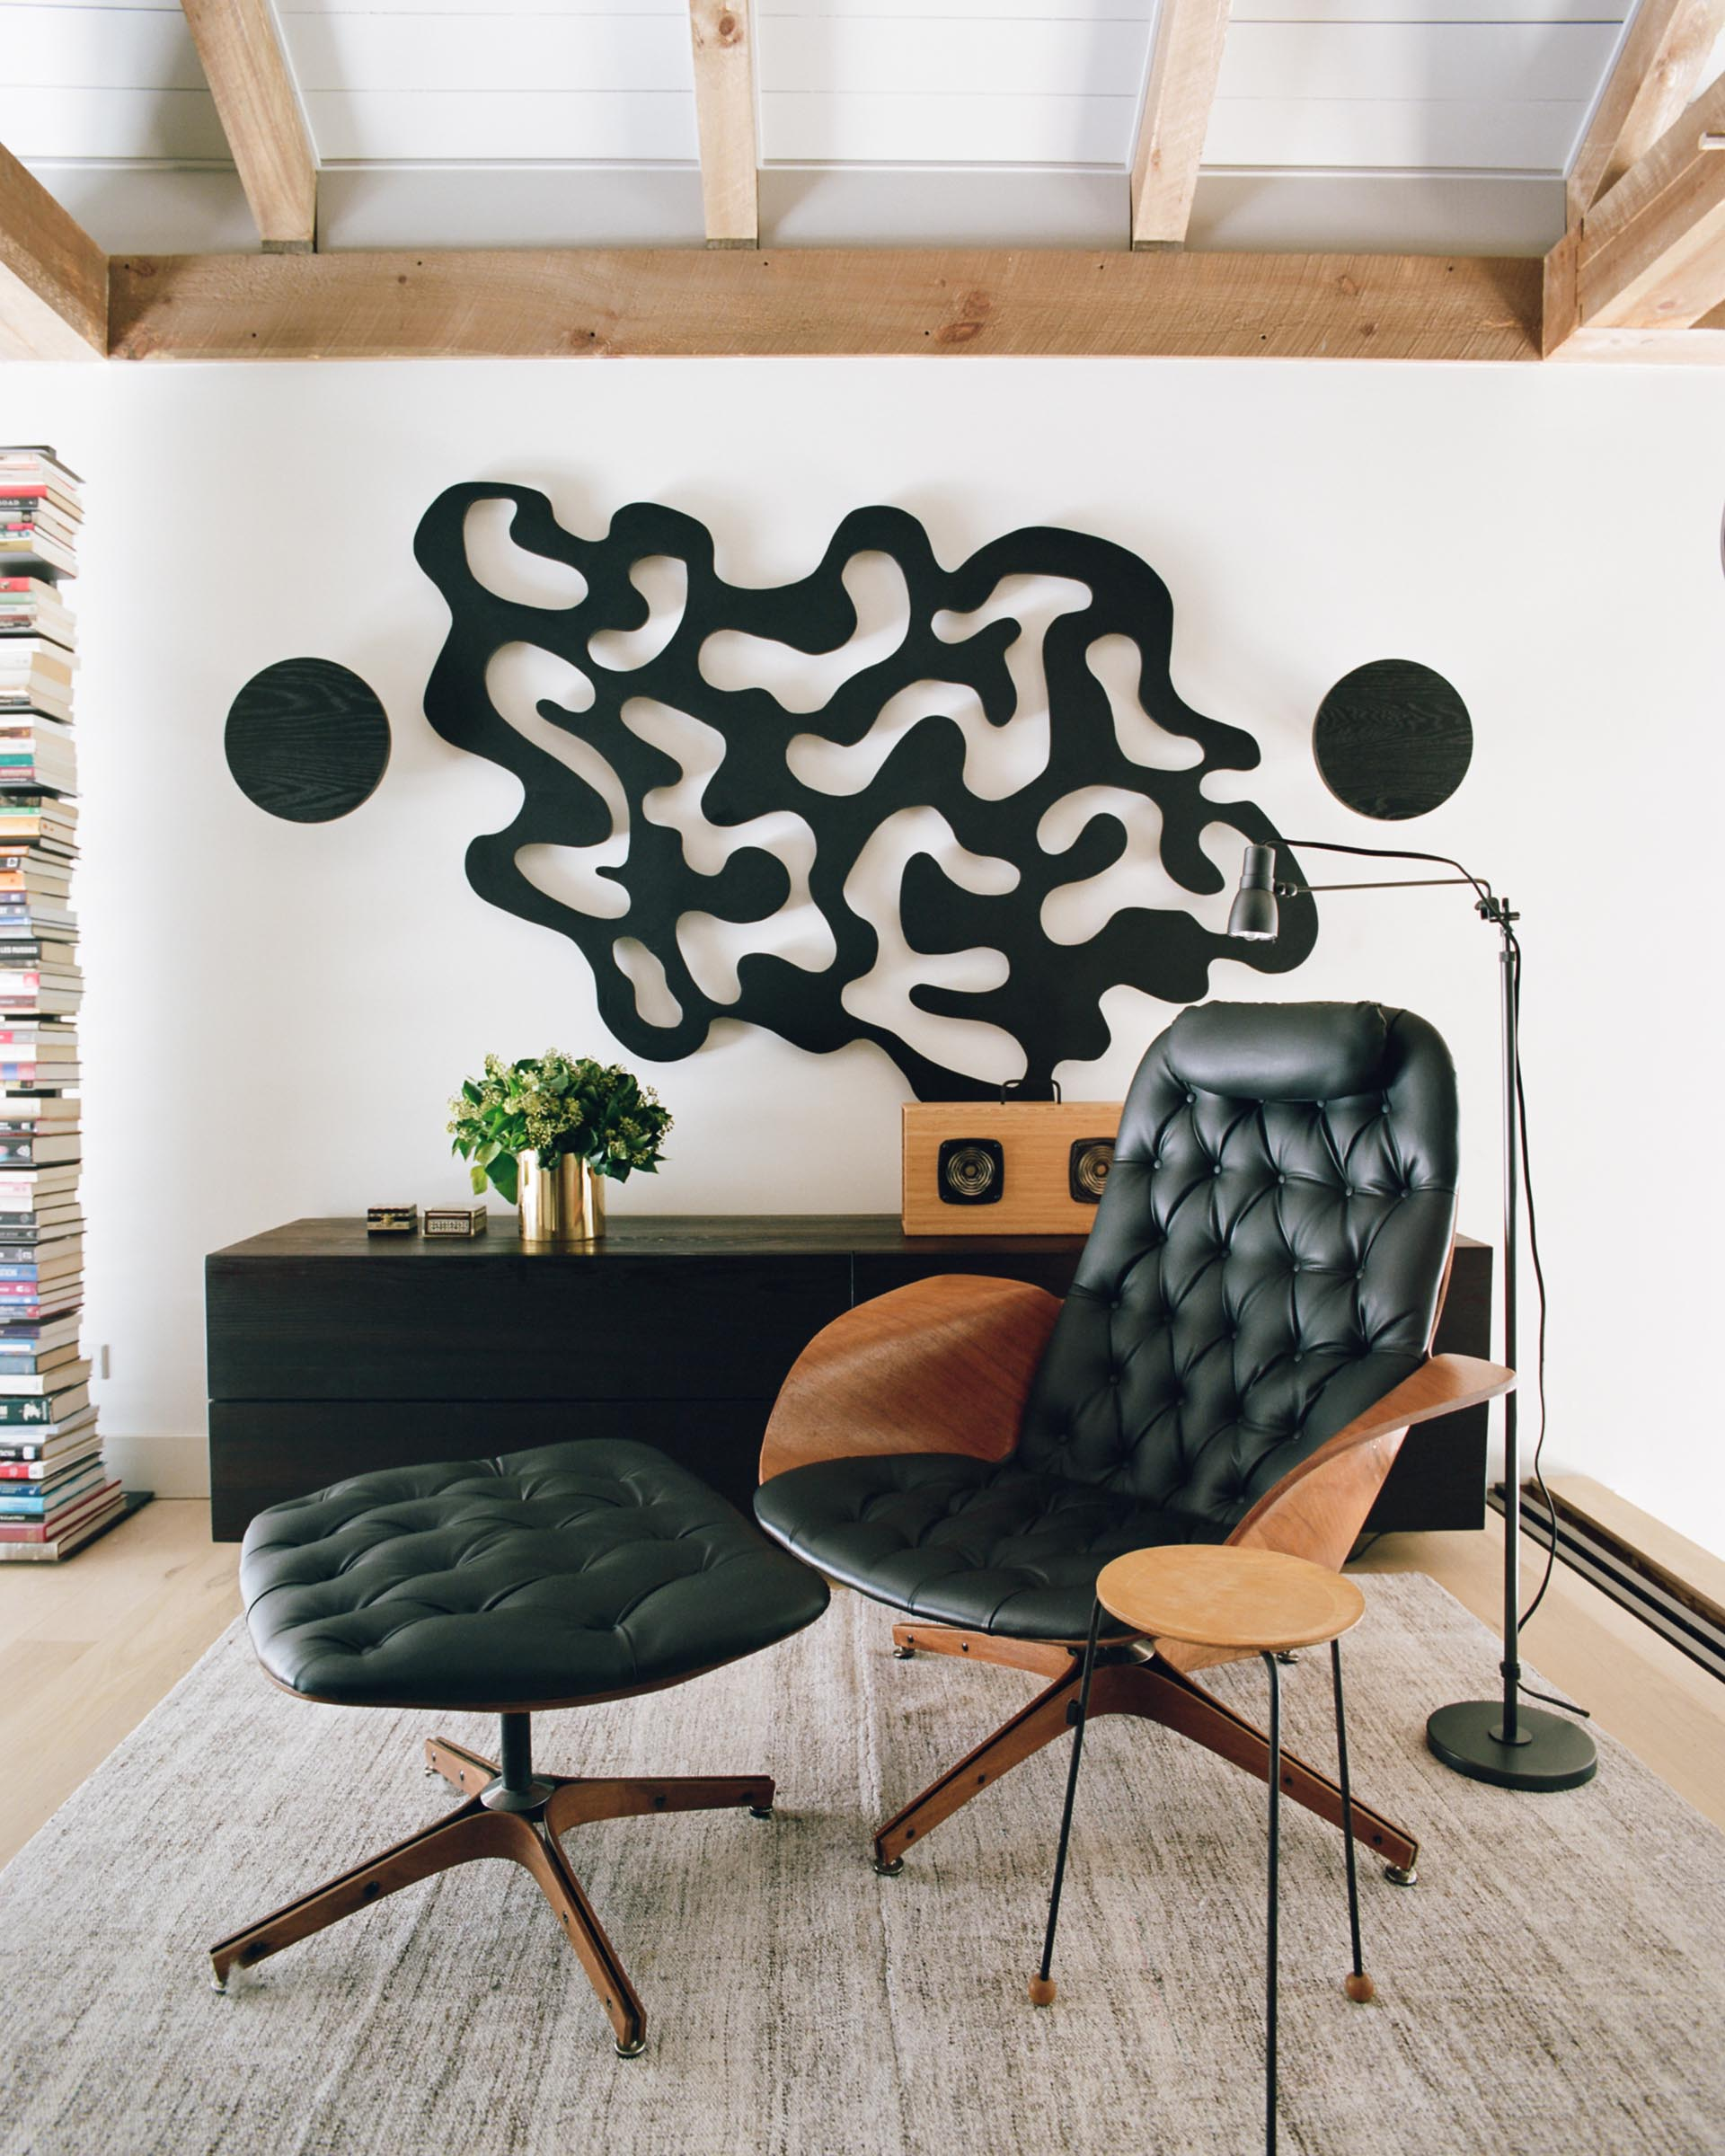 Vintage furnishings within a barn-inspired home.